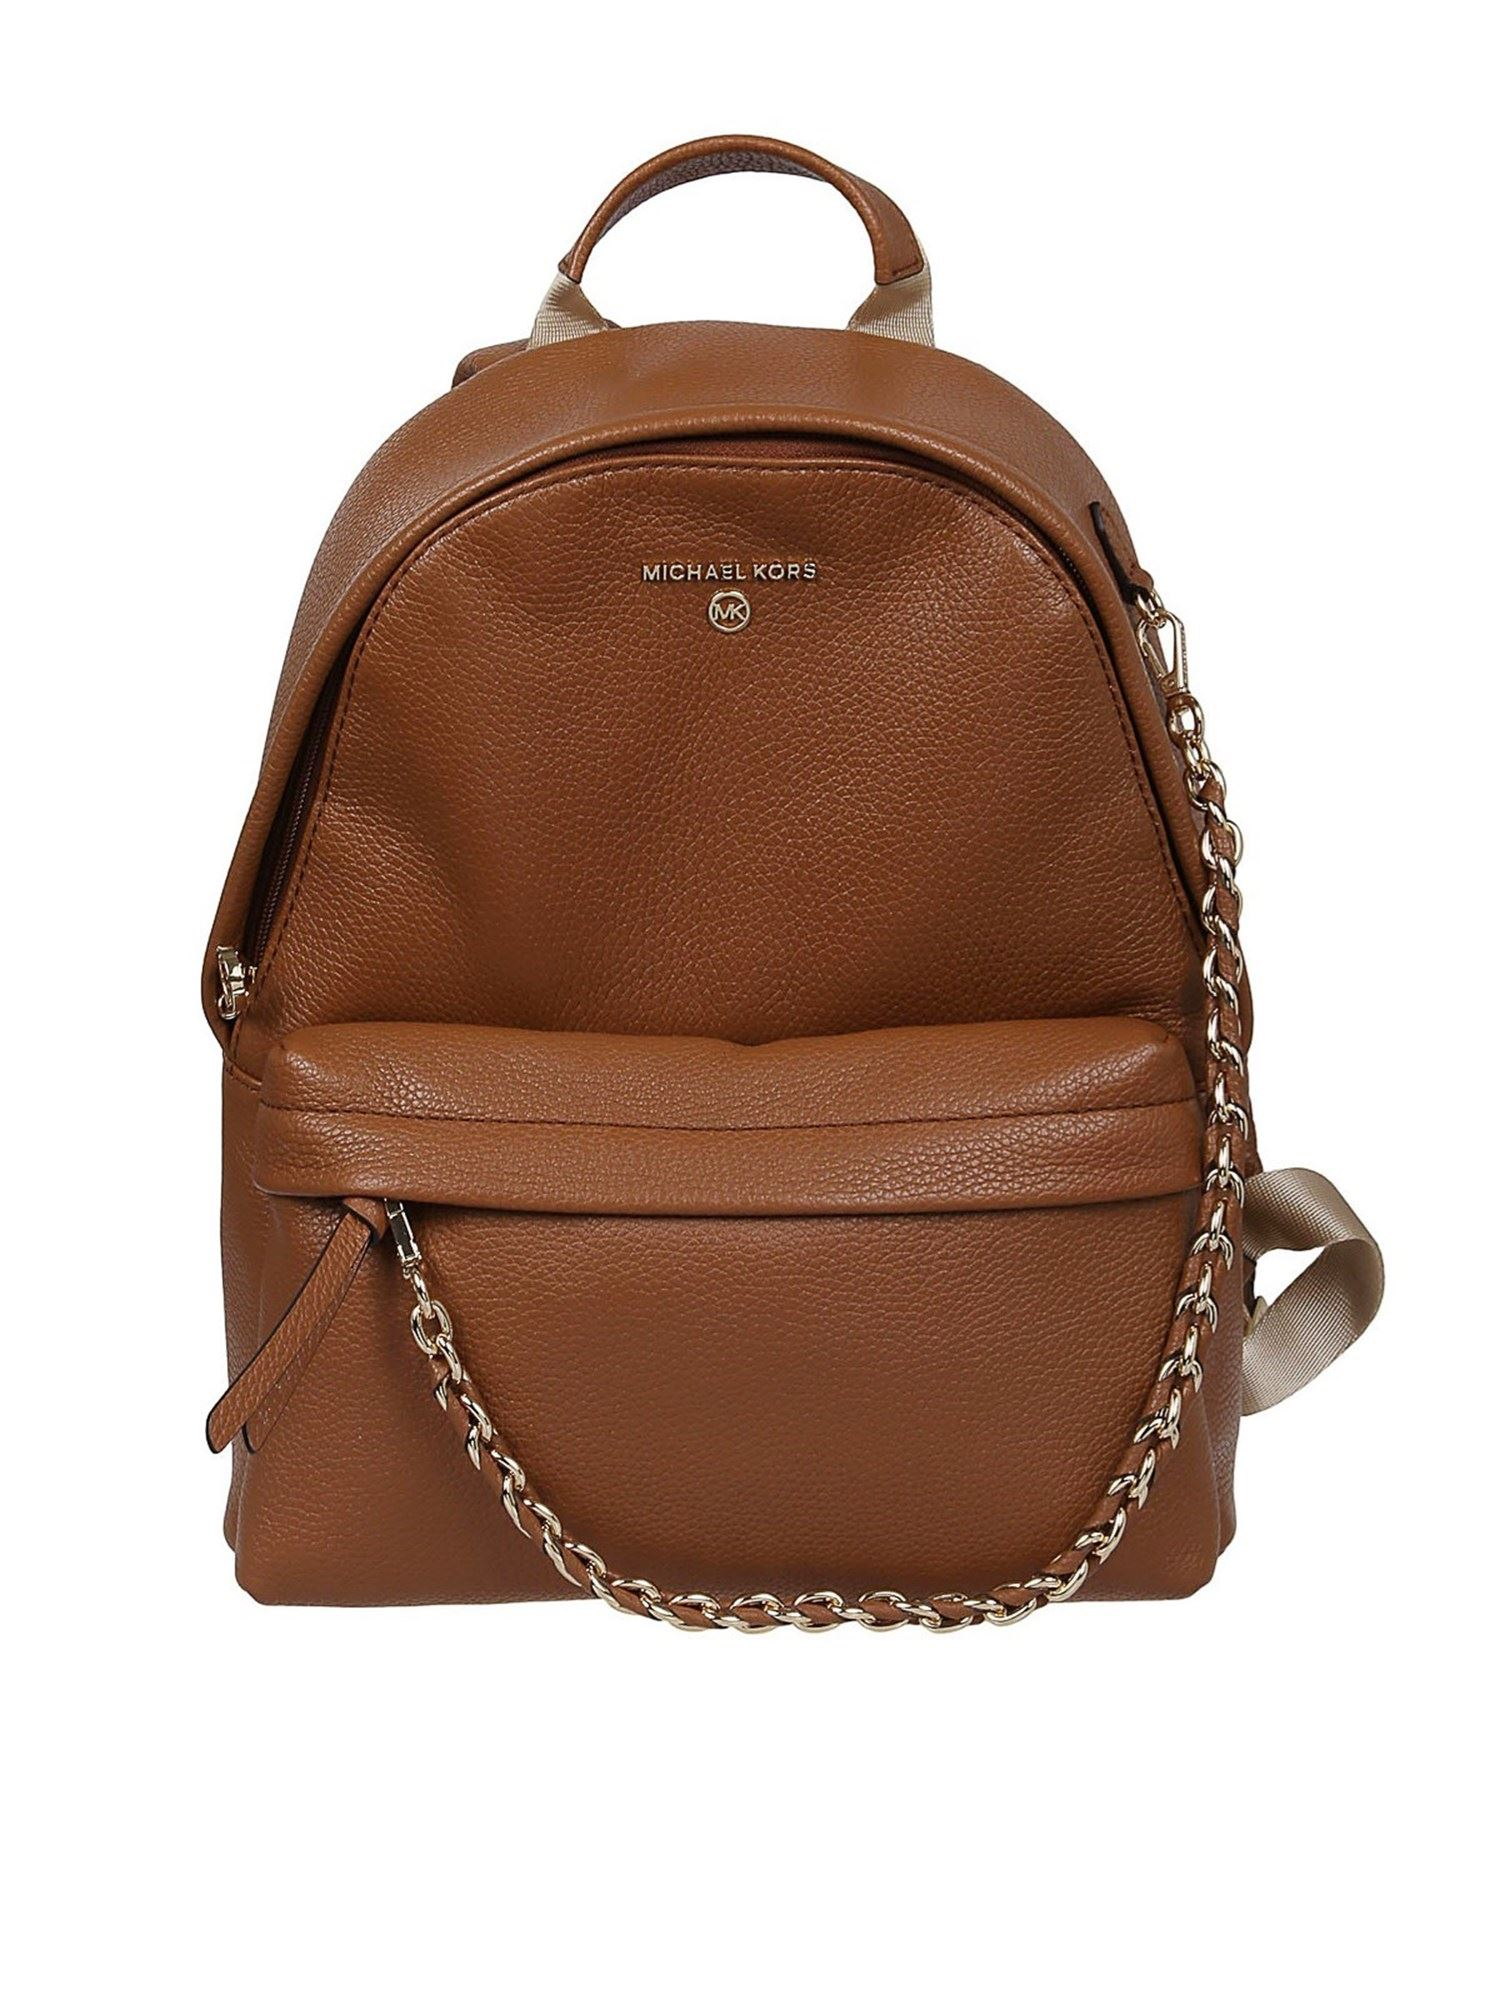 Michael Kors SLATER MEDIUM BACKPACK IN BROWN